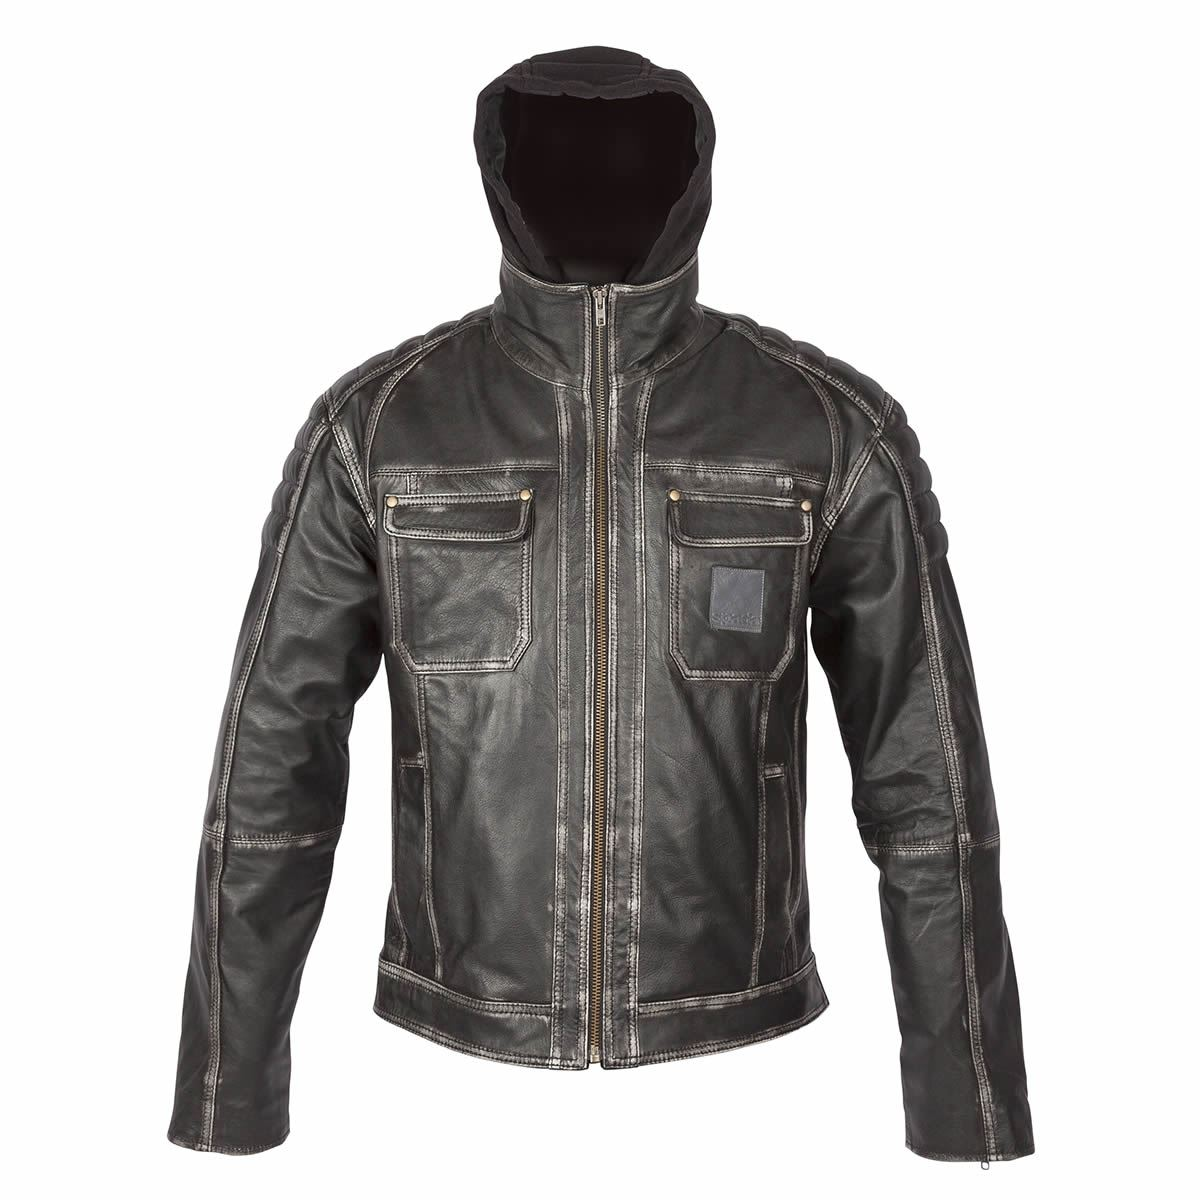 Lower Price with Suzuki 4269 White Motorbike Motorcycle Cowhide Leather Jacket And Leather Gloves Apparel & Merchandise Motorcycle Street Gear